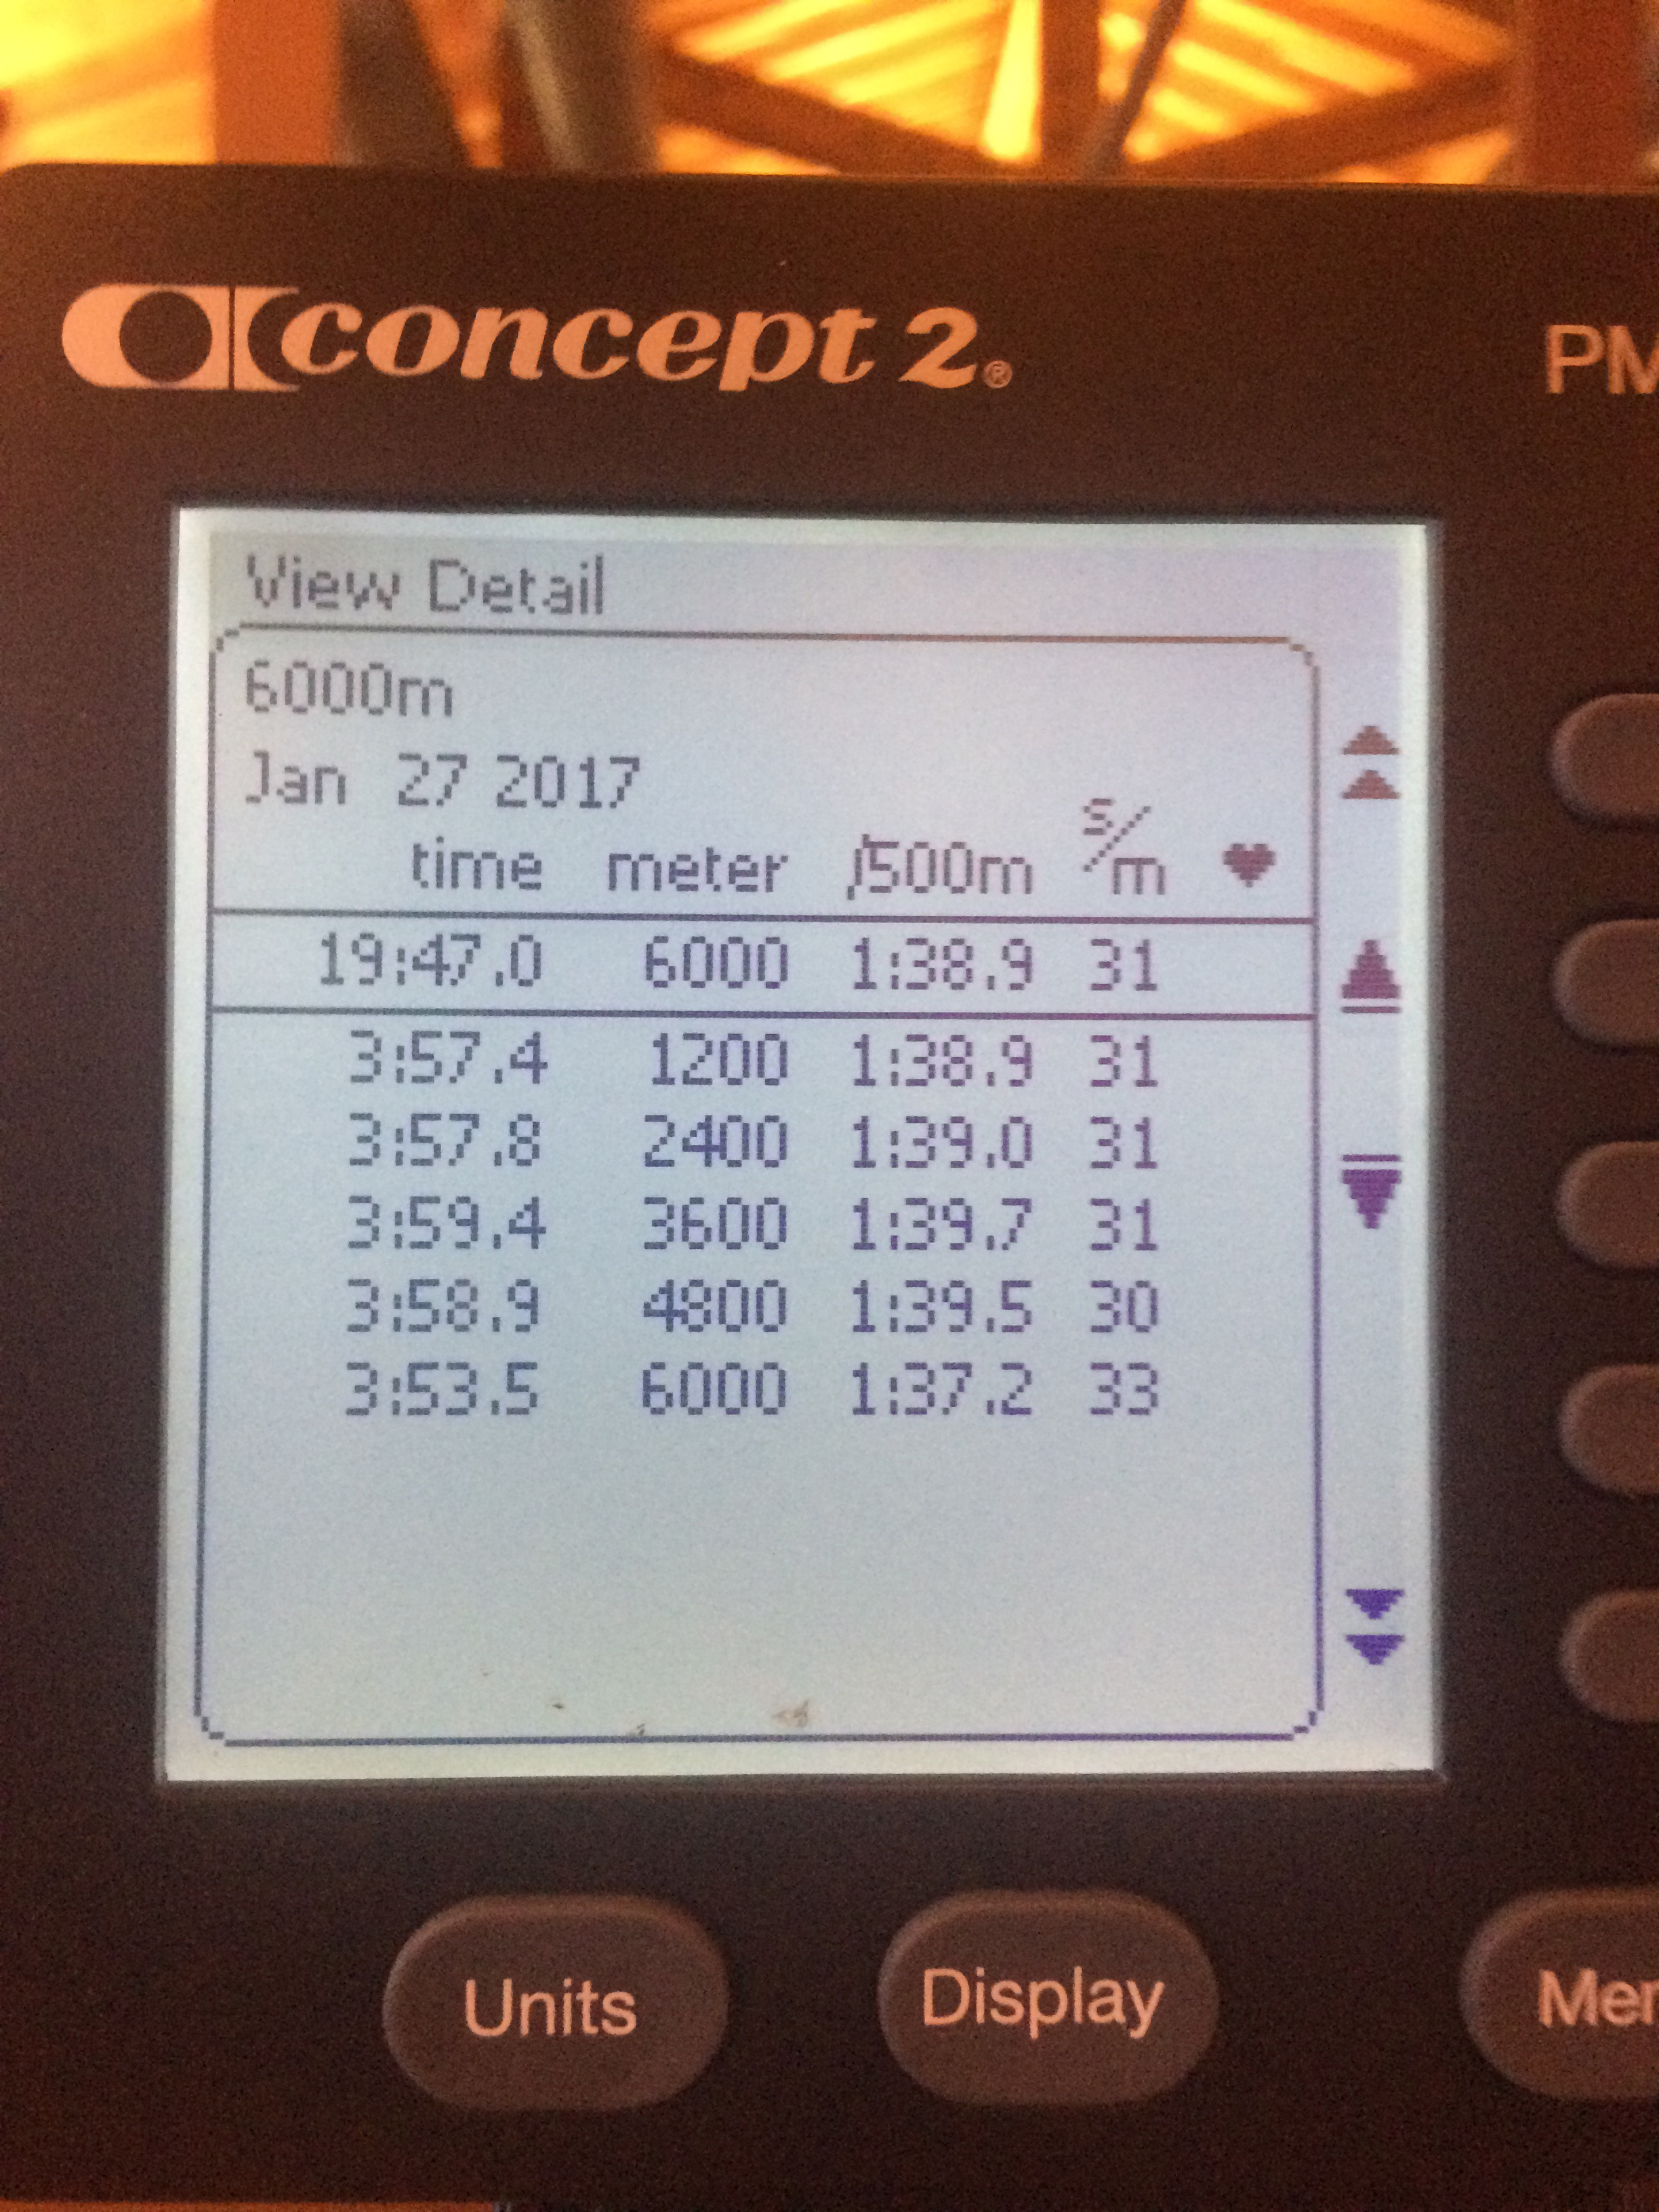 Screen shot of rower Charlie Kwitchoff's world record from Concepts 2.